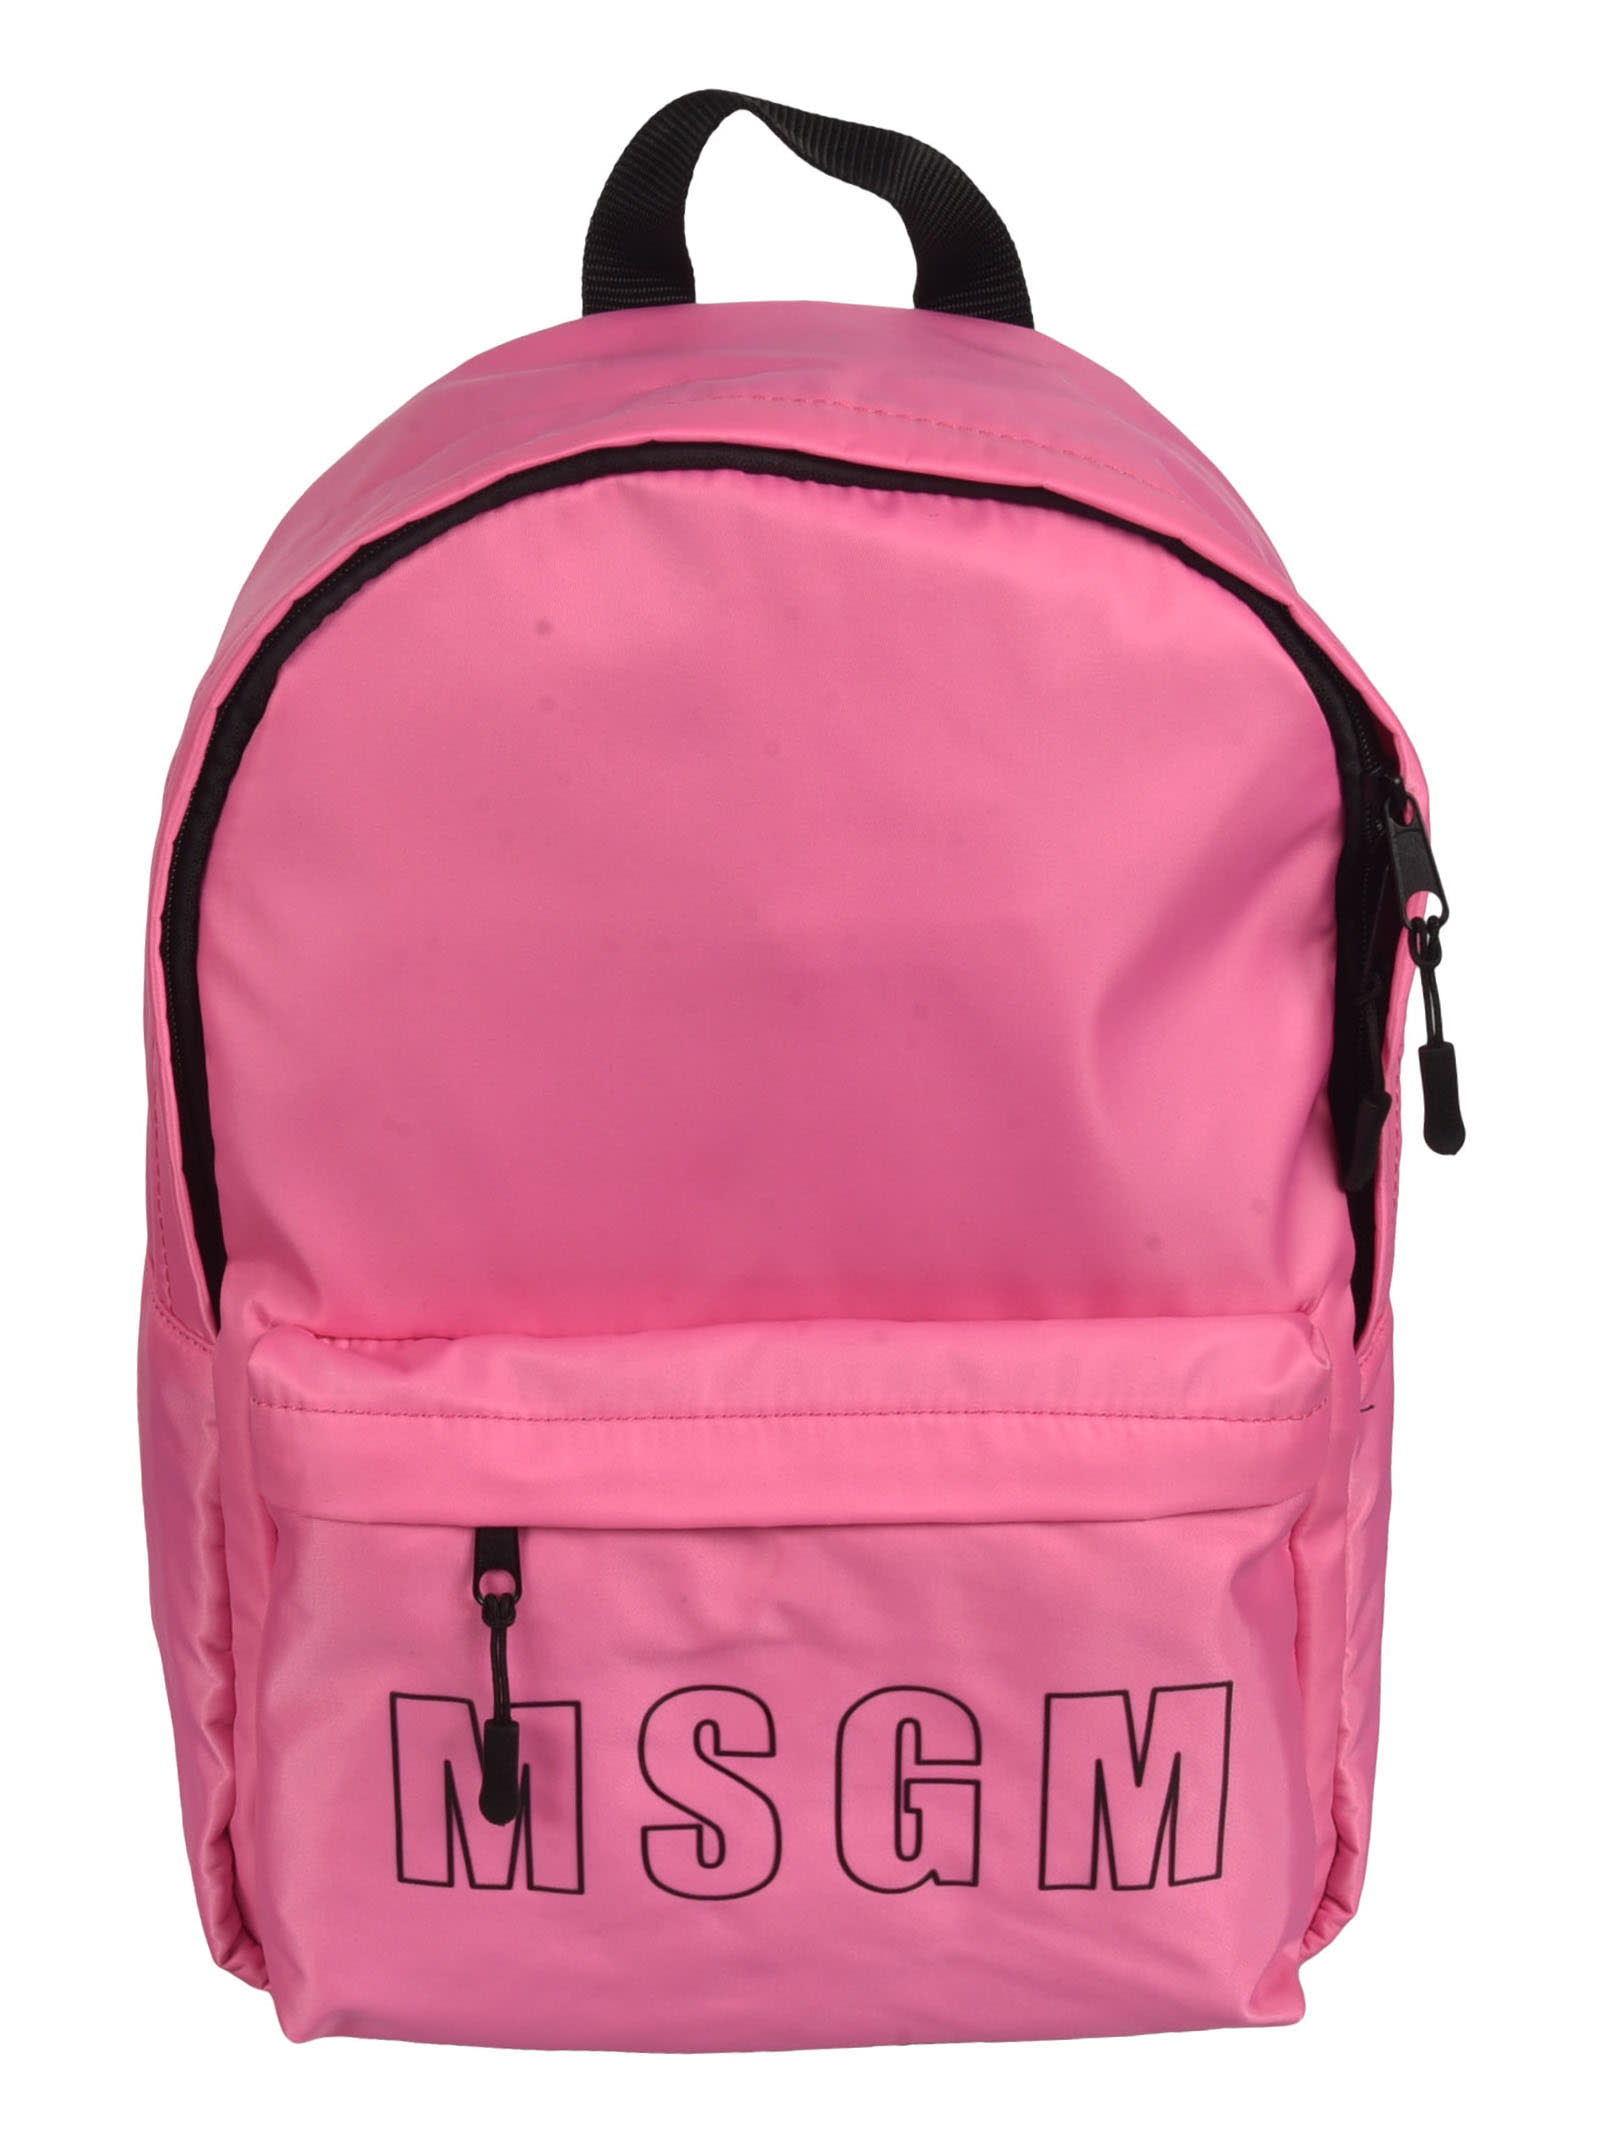 Msgm PLAIN LOGO BACKPACK